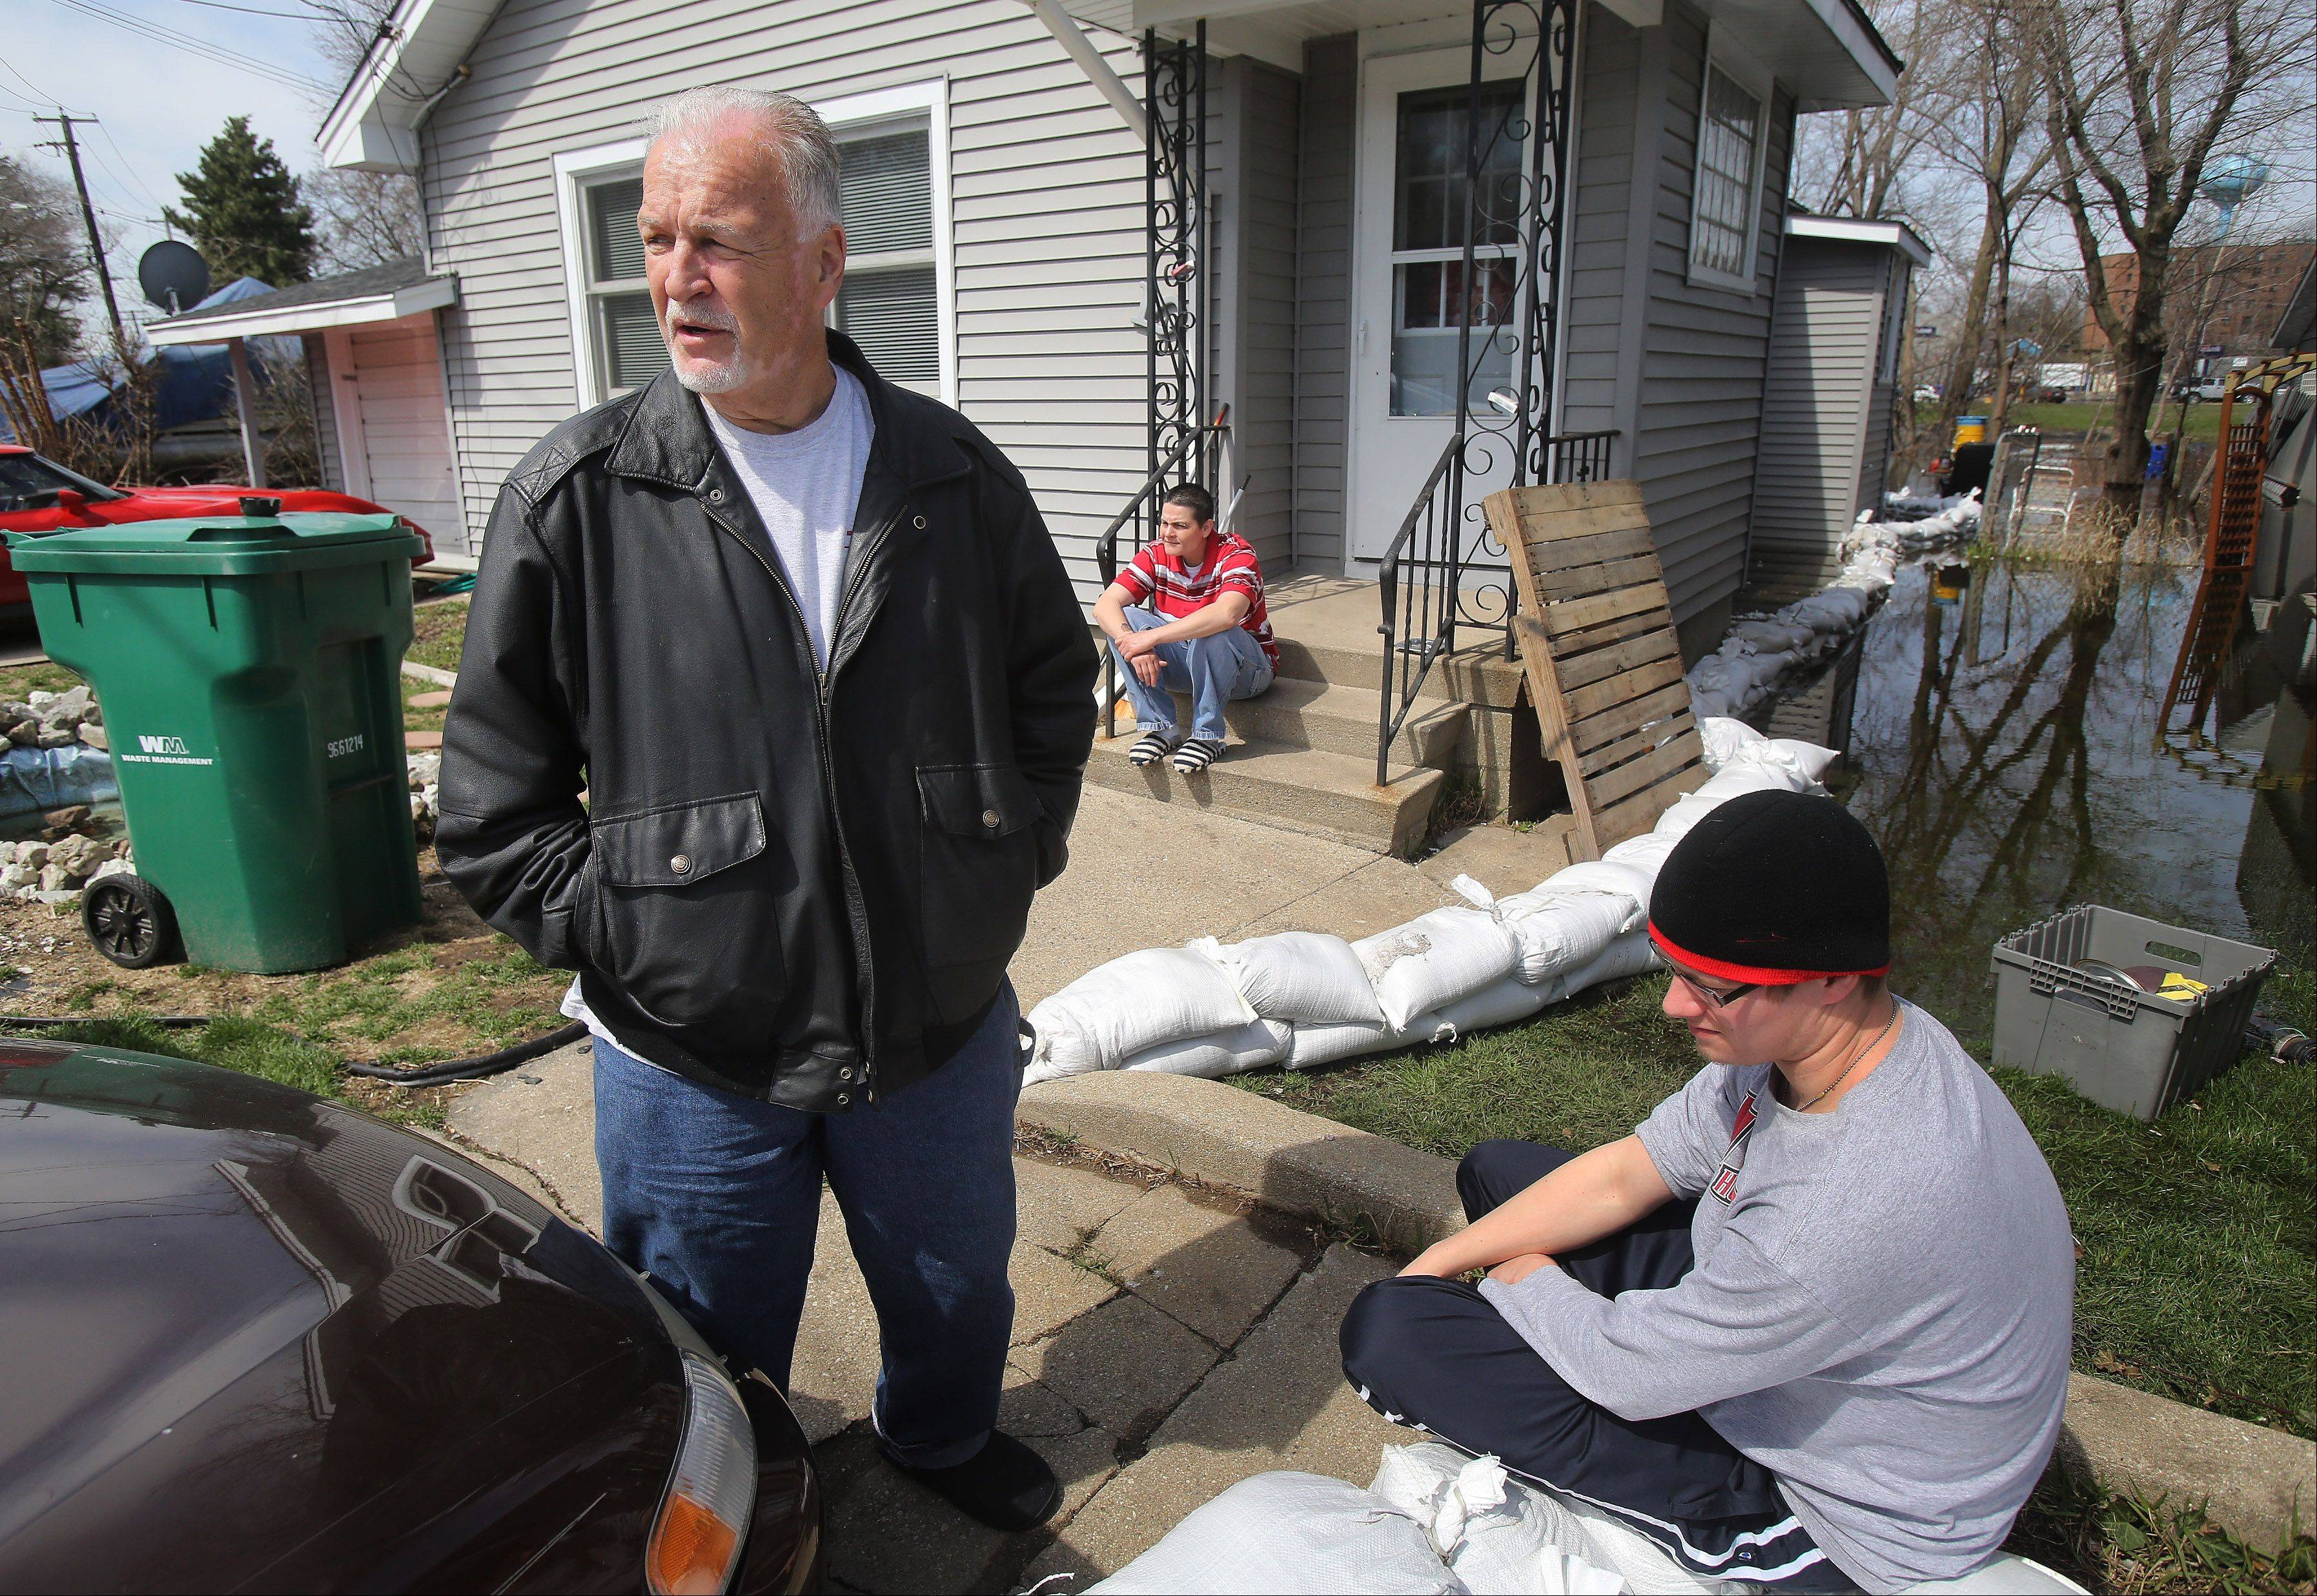 Fox Lake resident Ed Sikora discusses the affects of flooding on his home in Fox Lake on Monday. Diane Hristov is sitting on the porch and neighbor Ryan Jaworek is right.